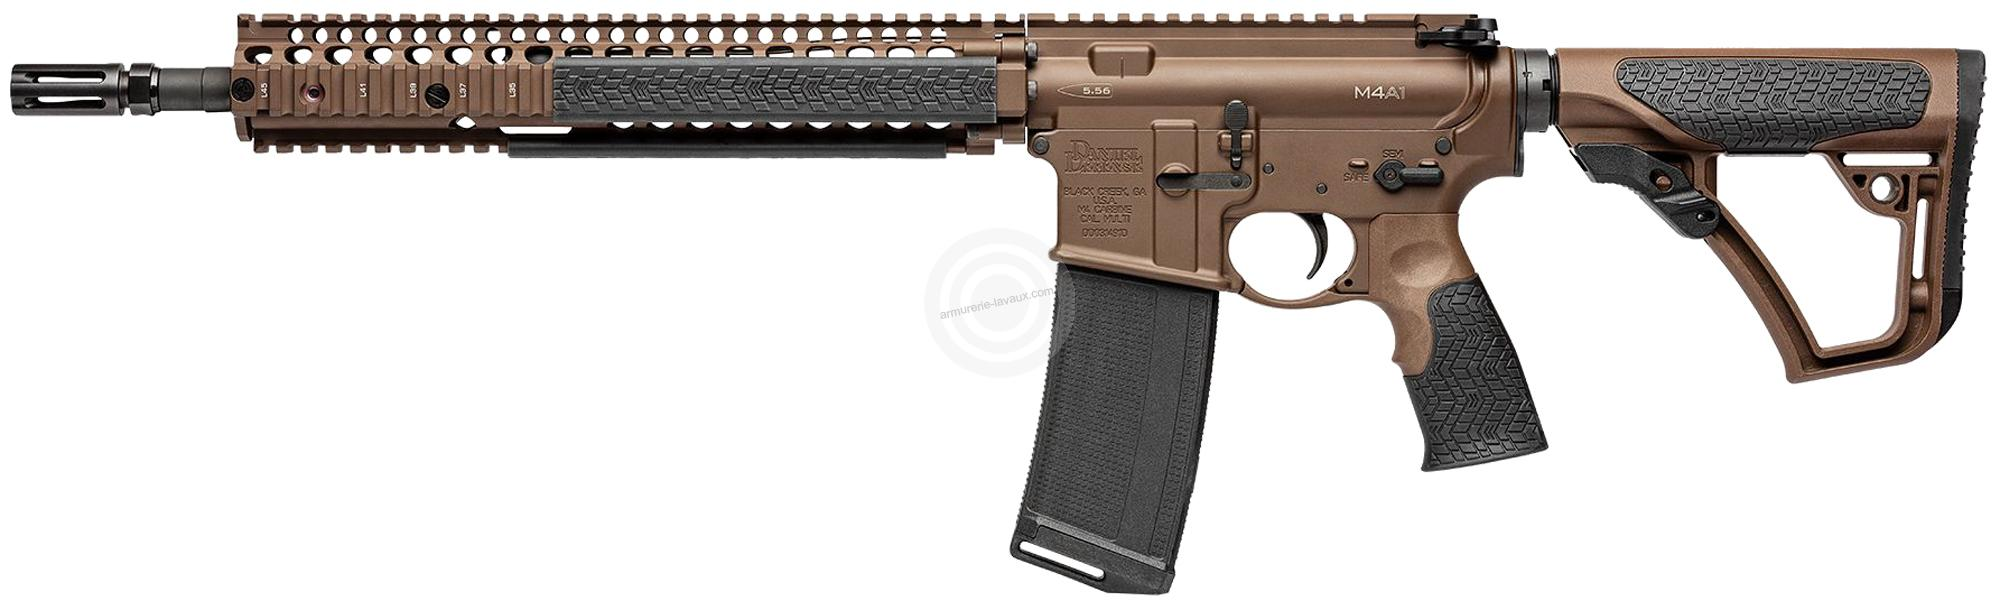 DANIEL DEFENSE M4A1 Brown Mil Spec 14.5